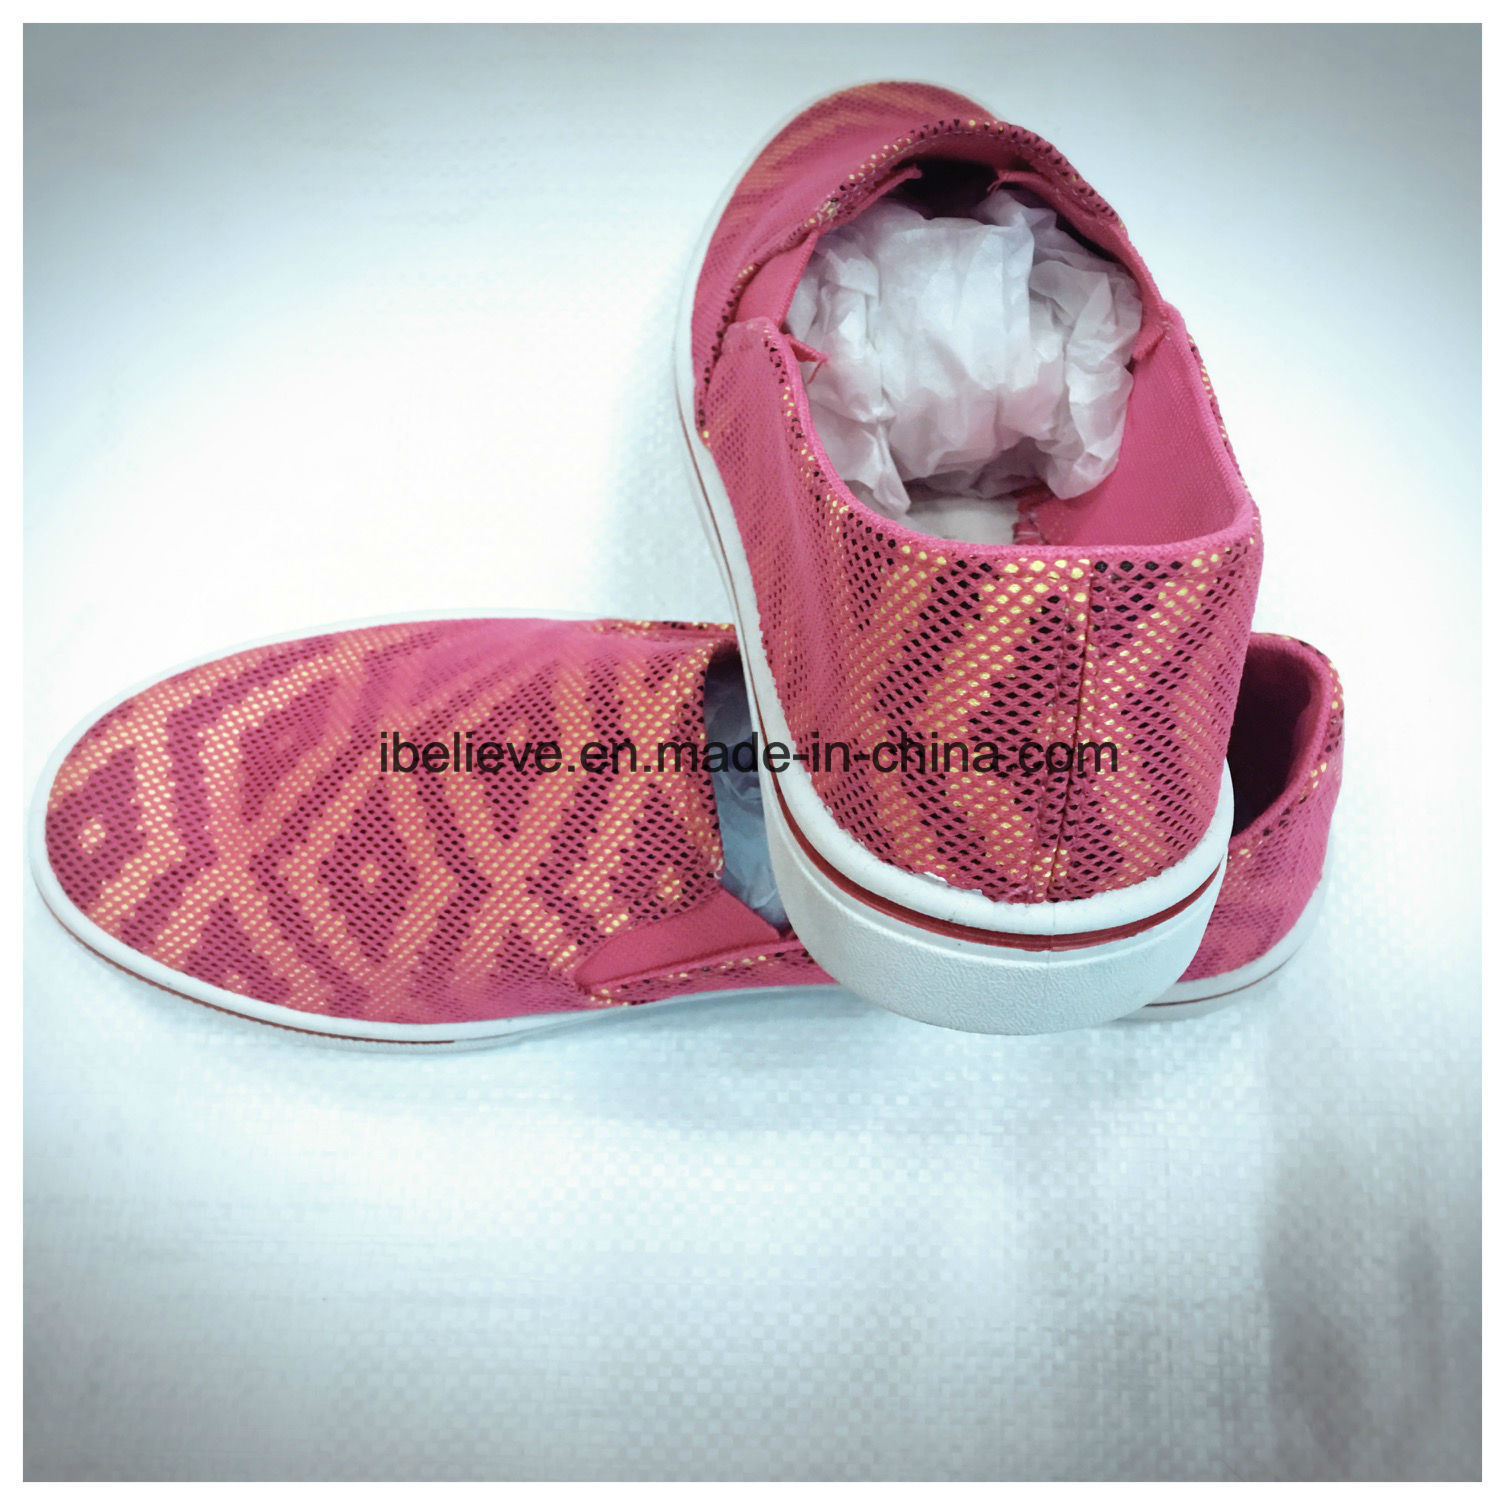 Casual Mesh Shoes for Girls